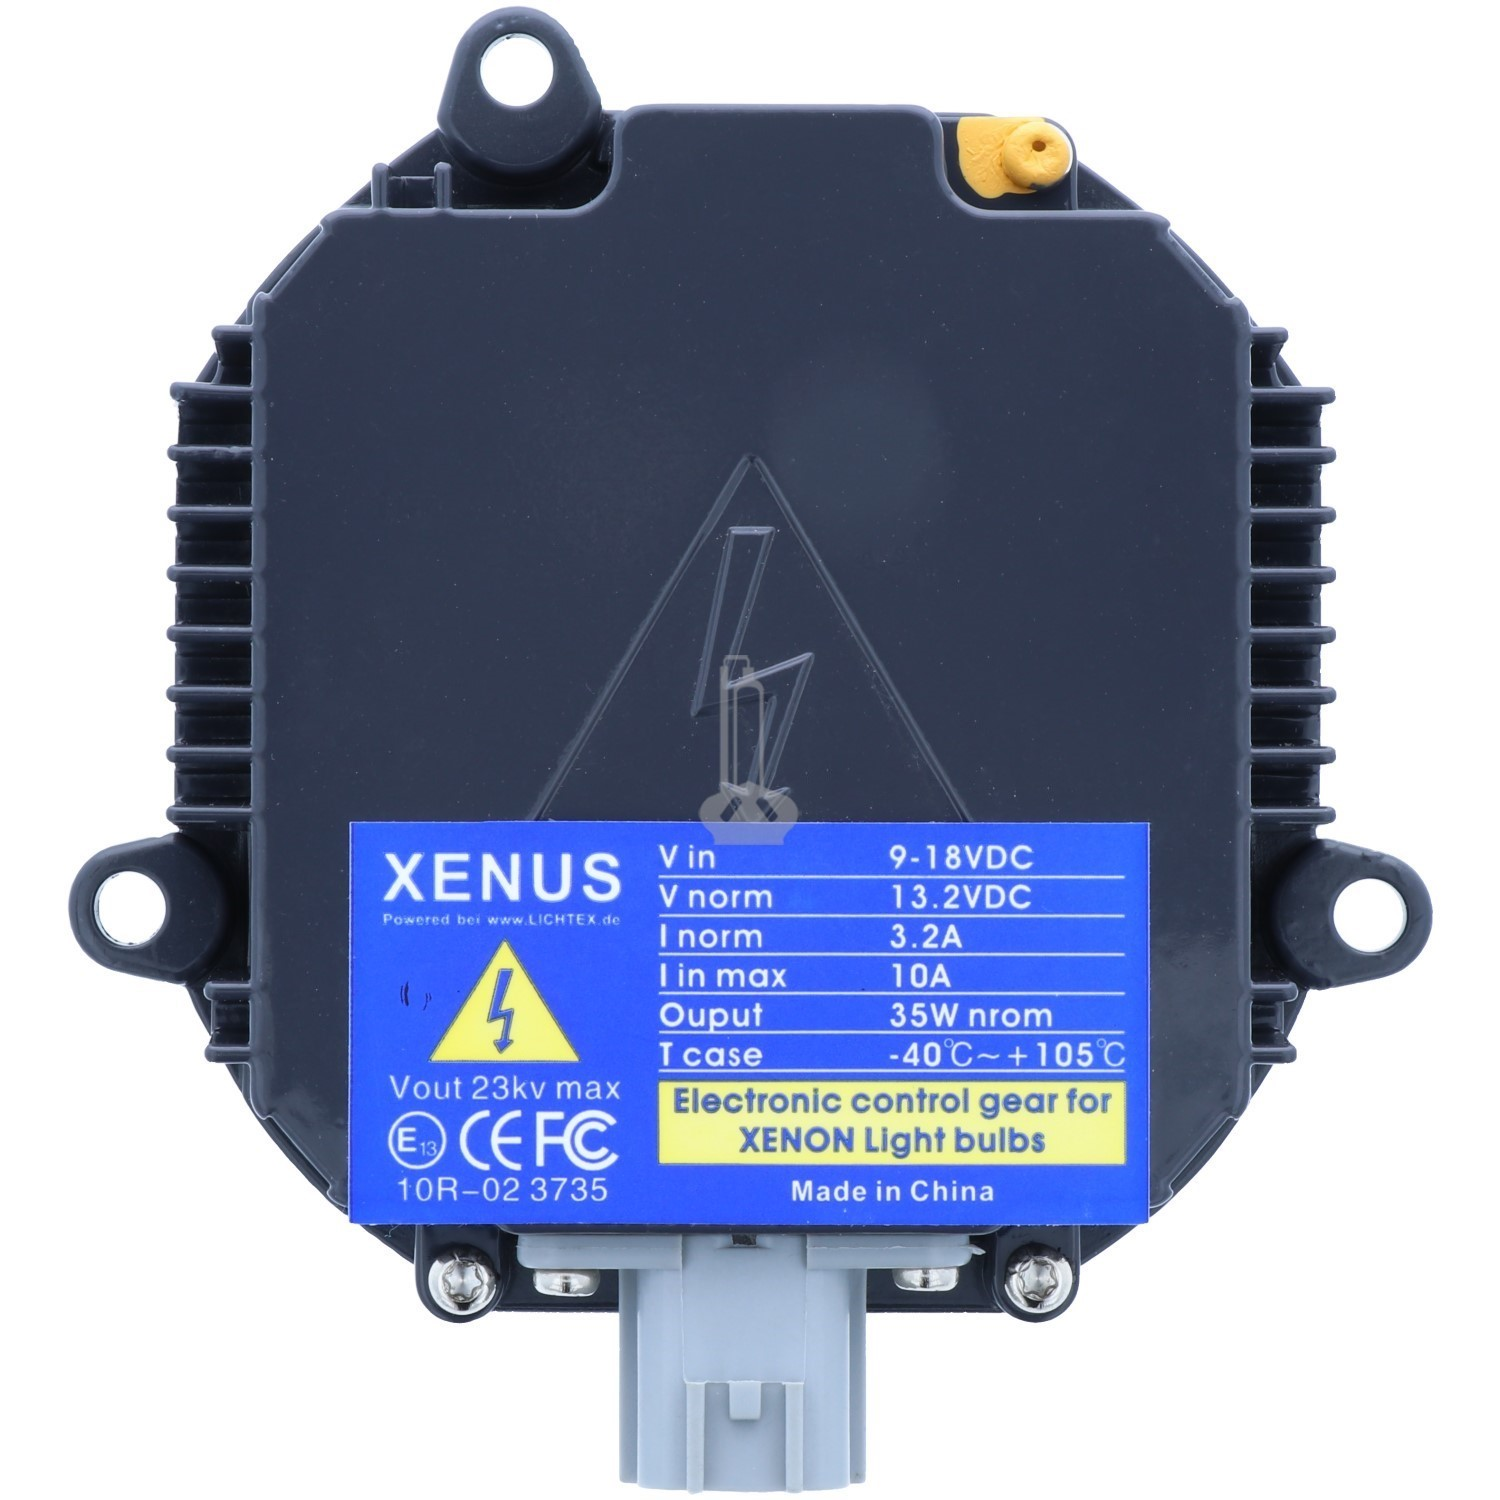 XENUS GEN4 D2S/D2R Xenon Headlight Ballast, Replacement for MATSUSHITA-PANASONIC